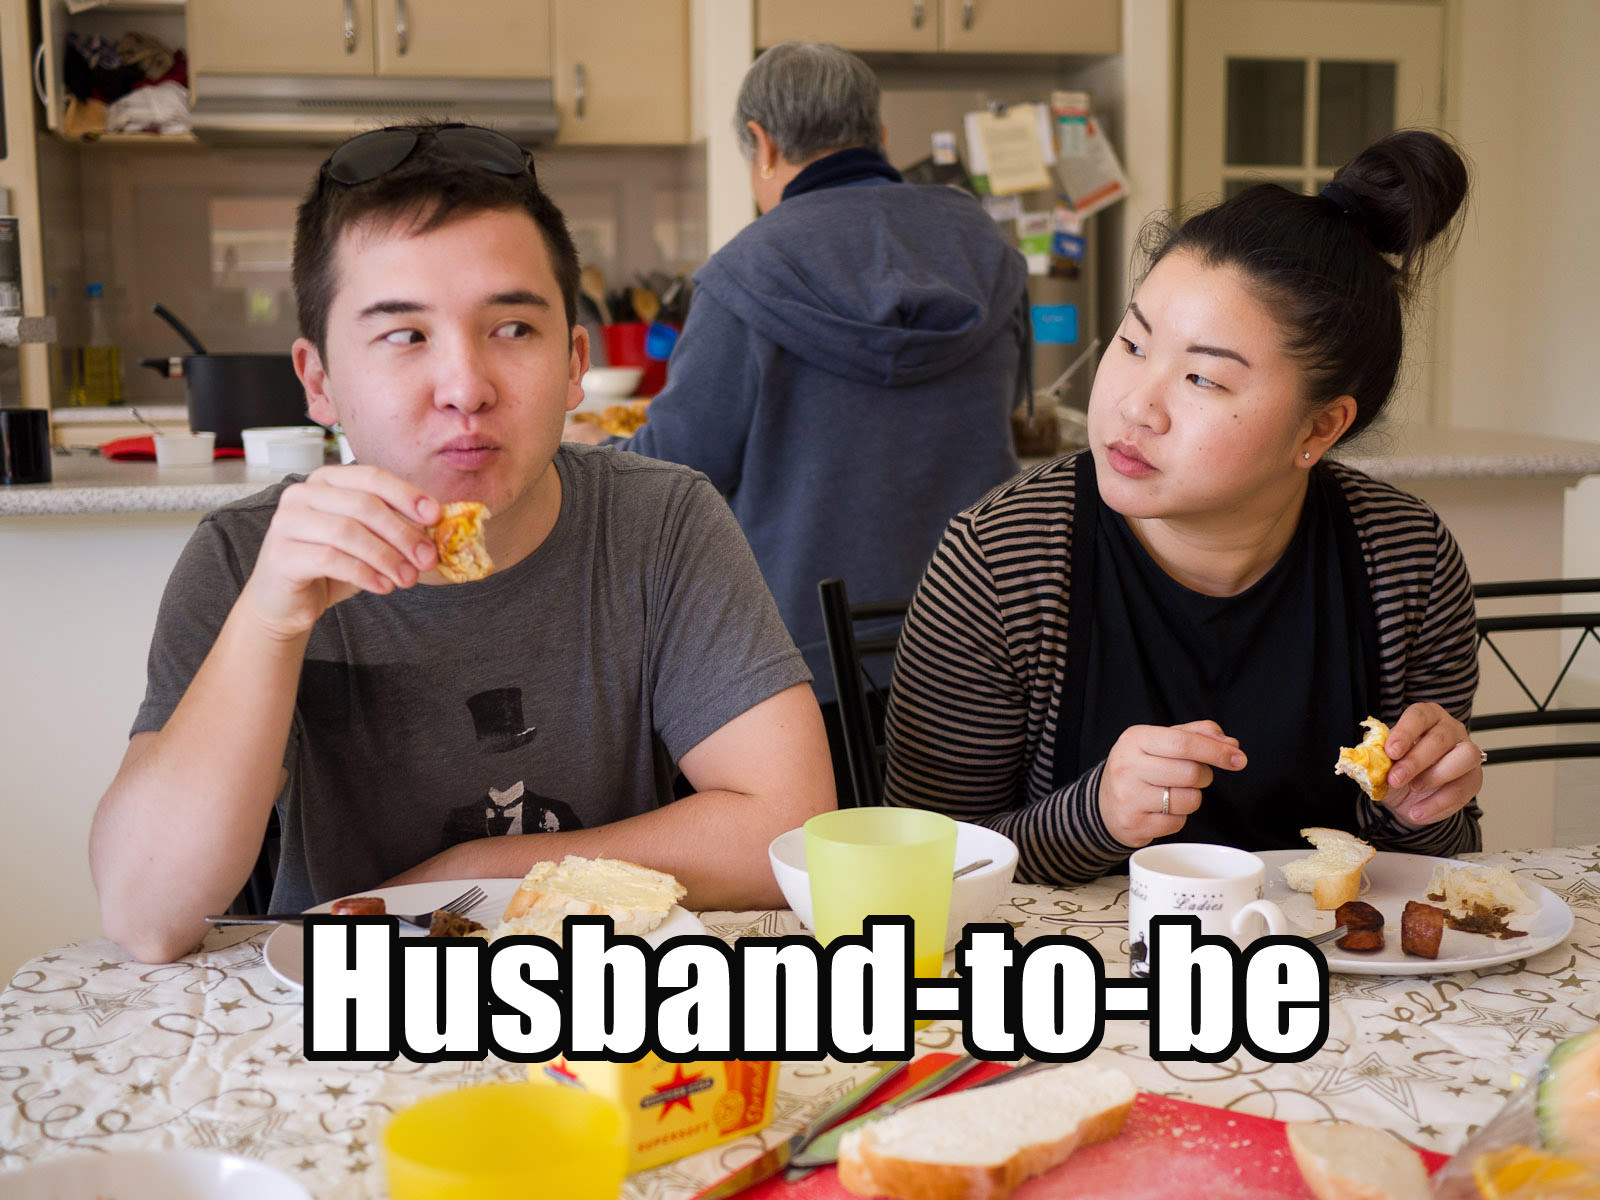 Husband-to-be